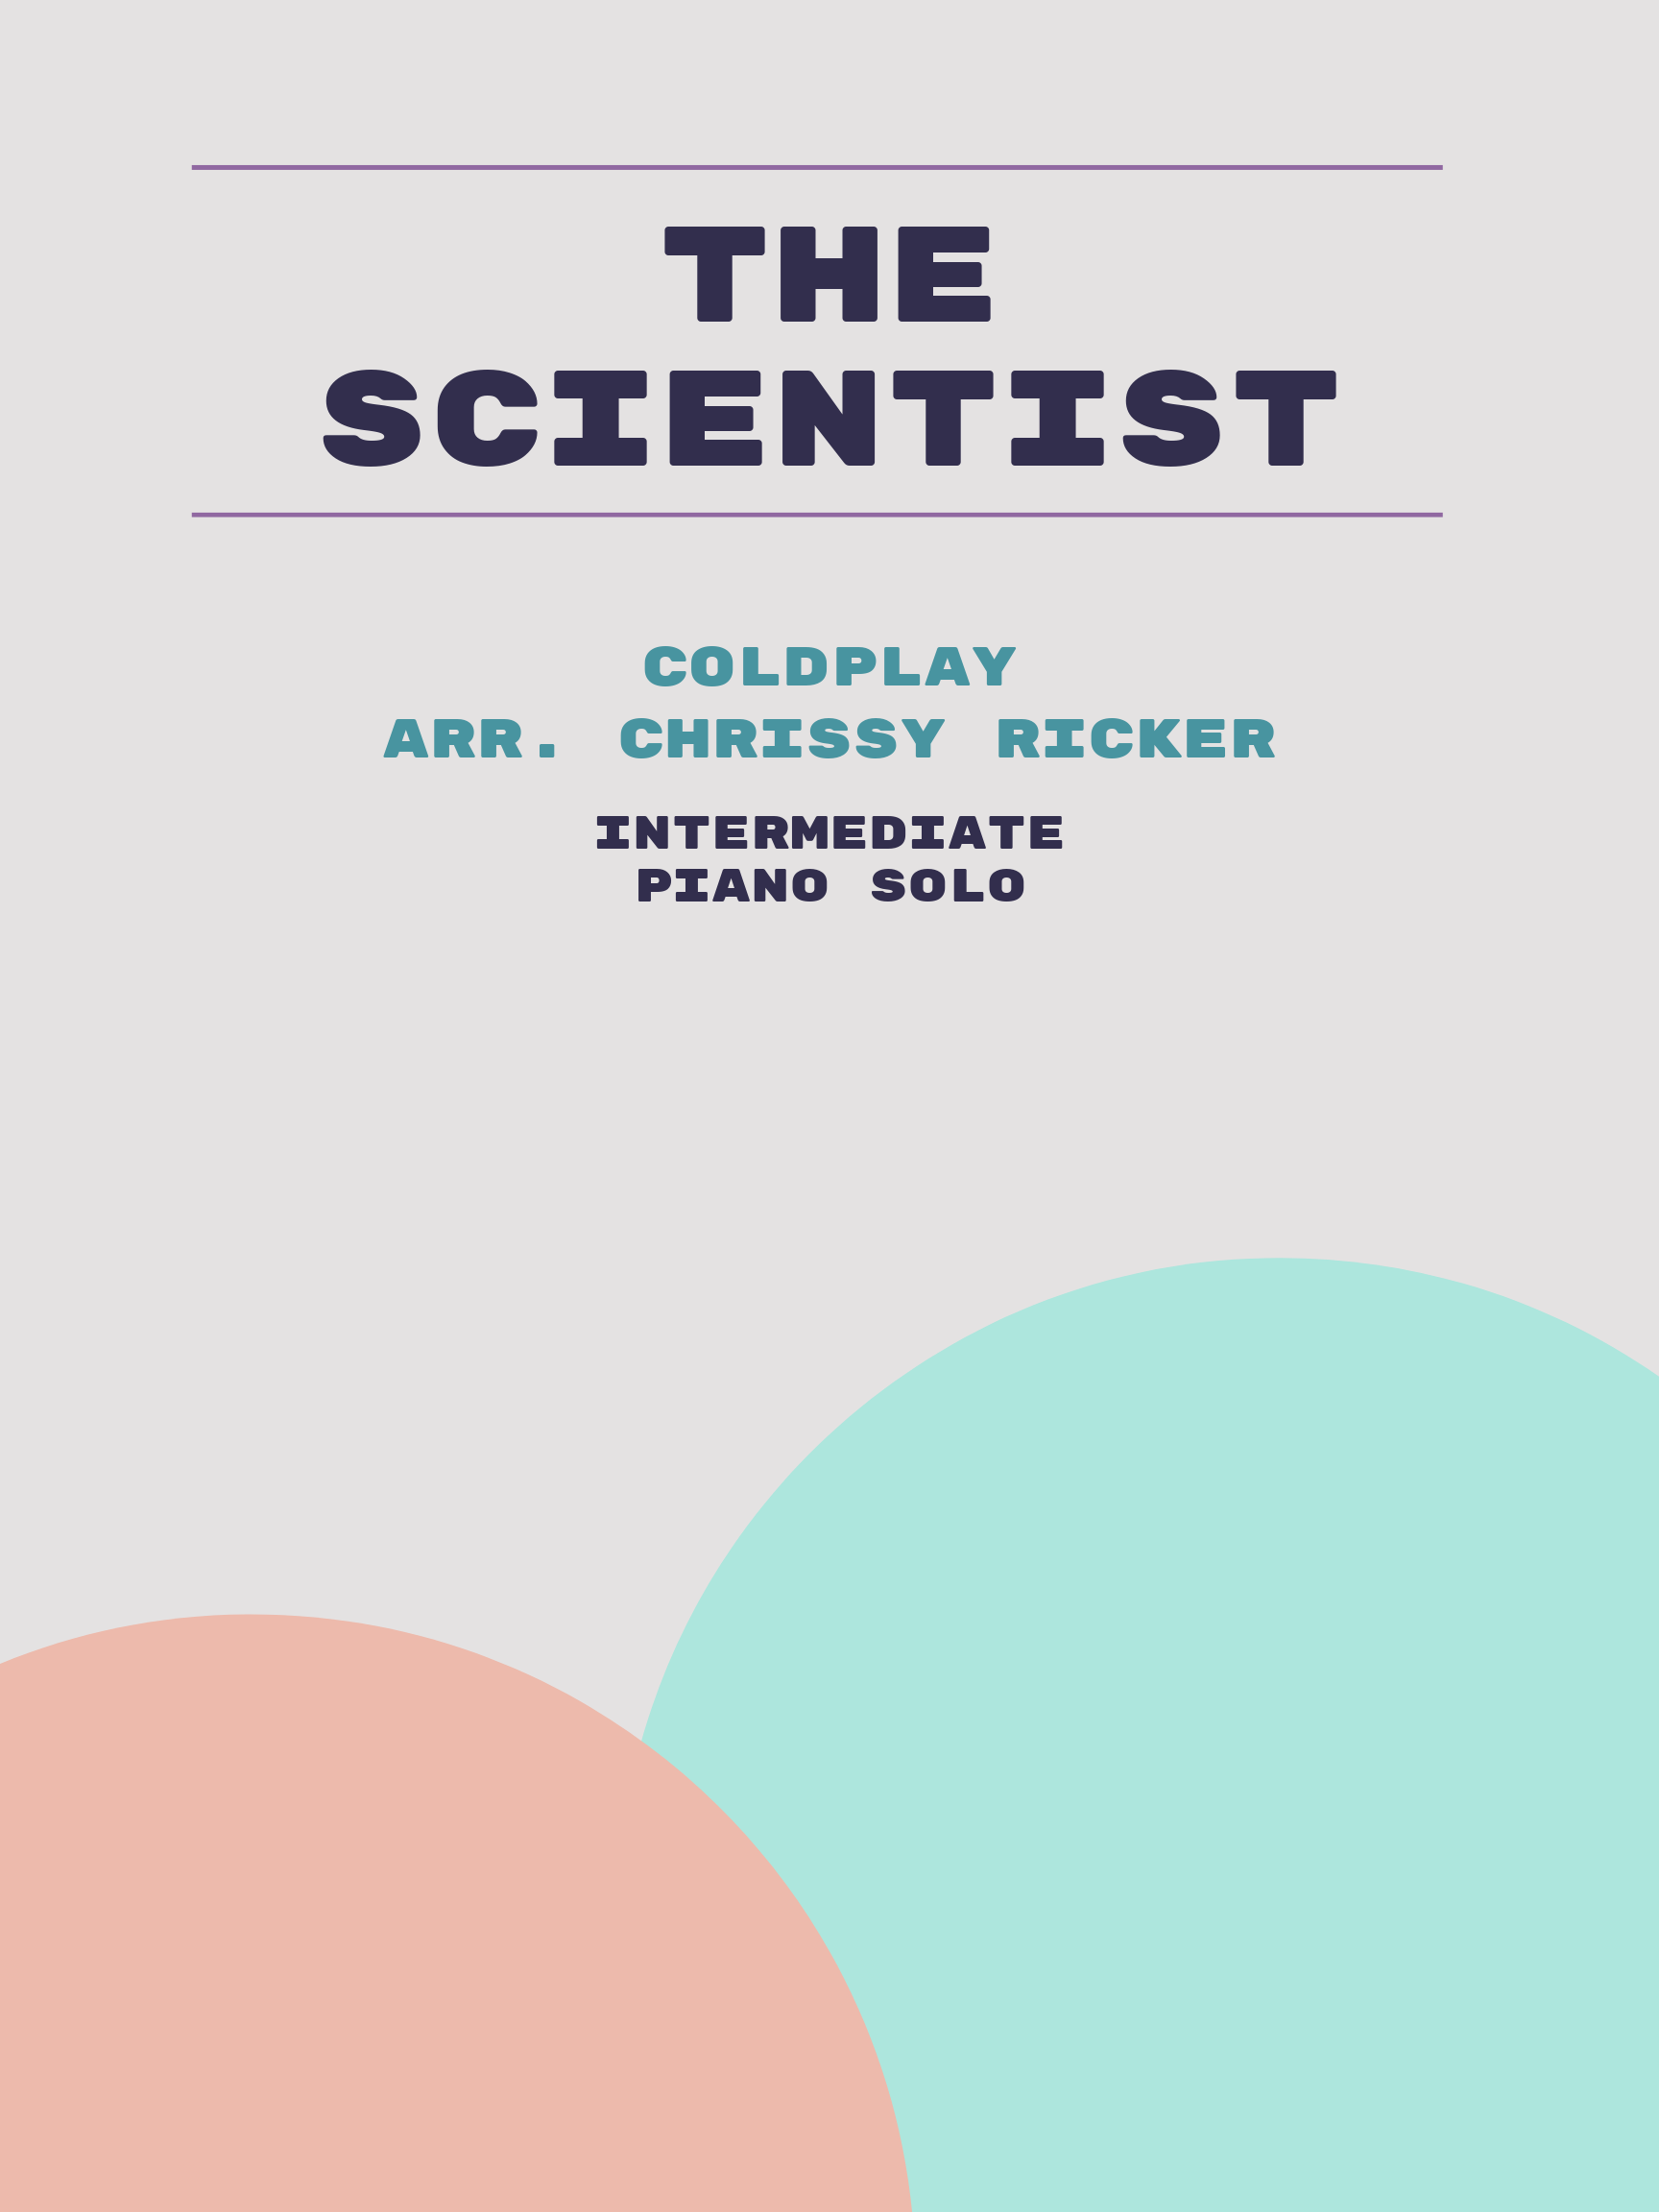 The Scientist by Coldplay